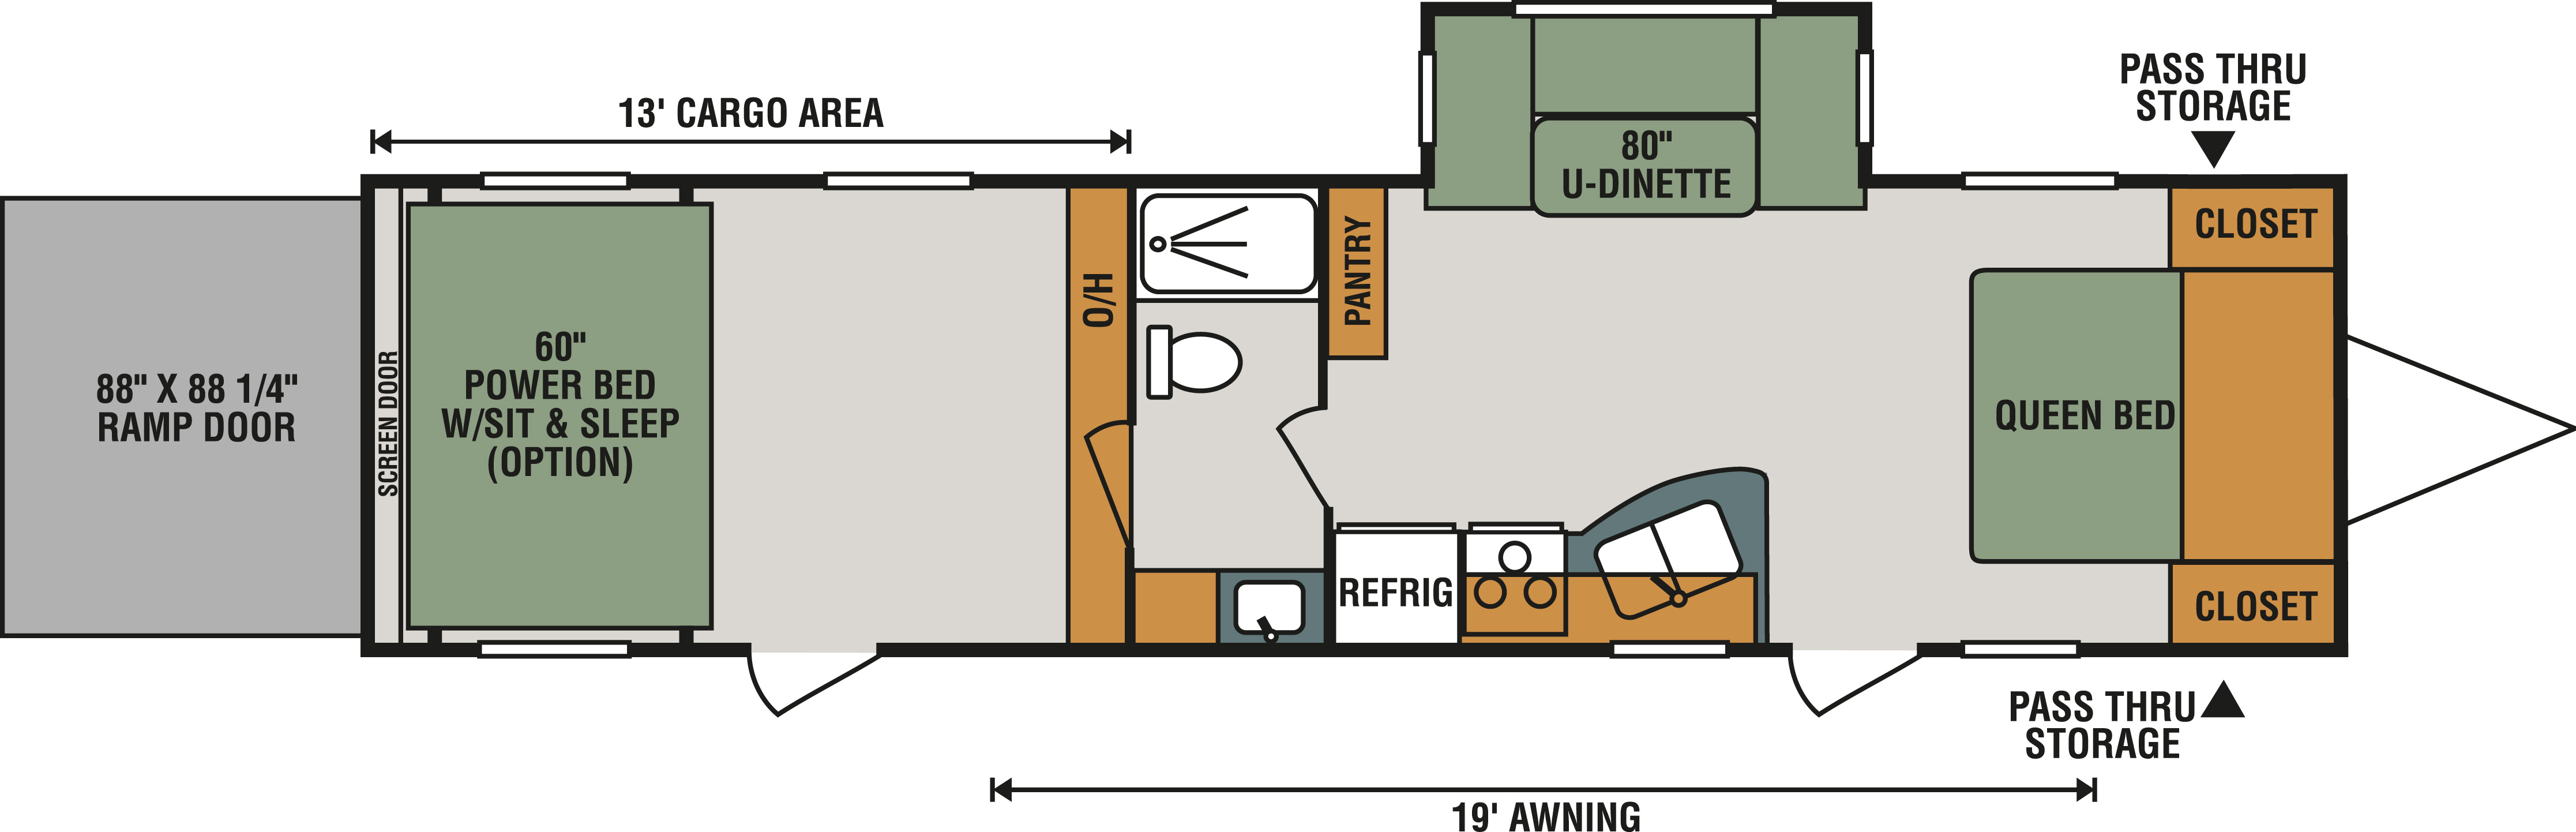 321THR13 Floorplan